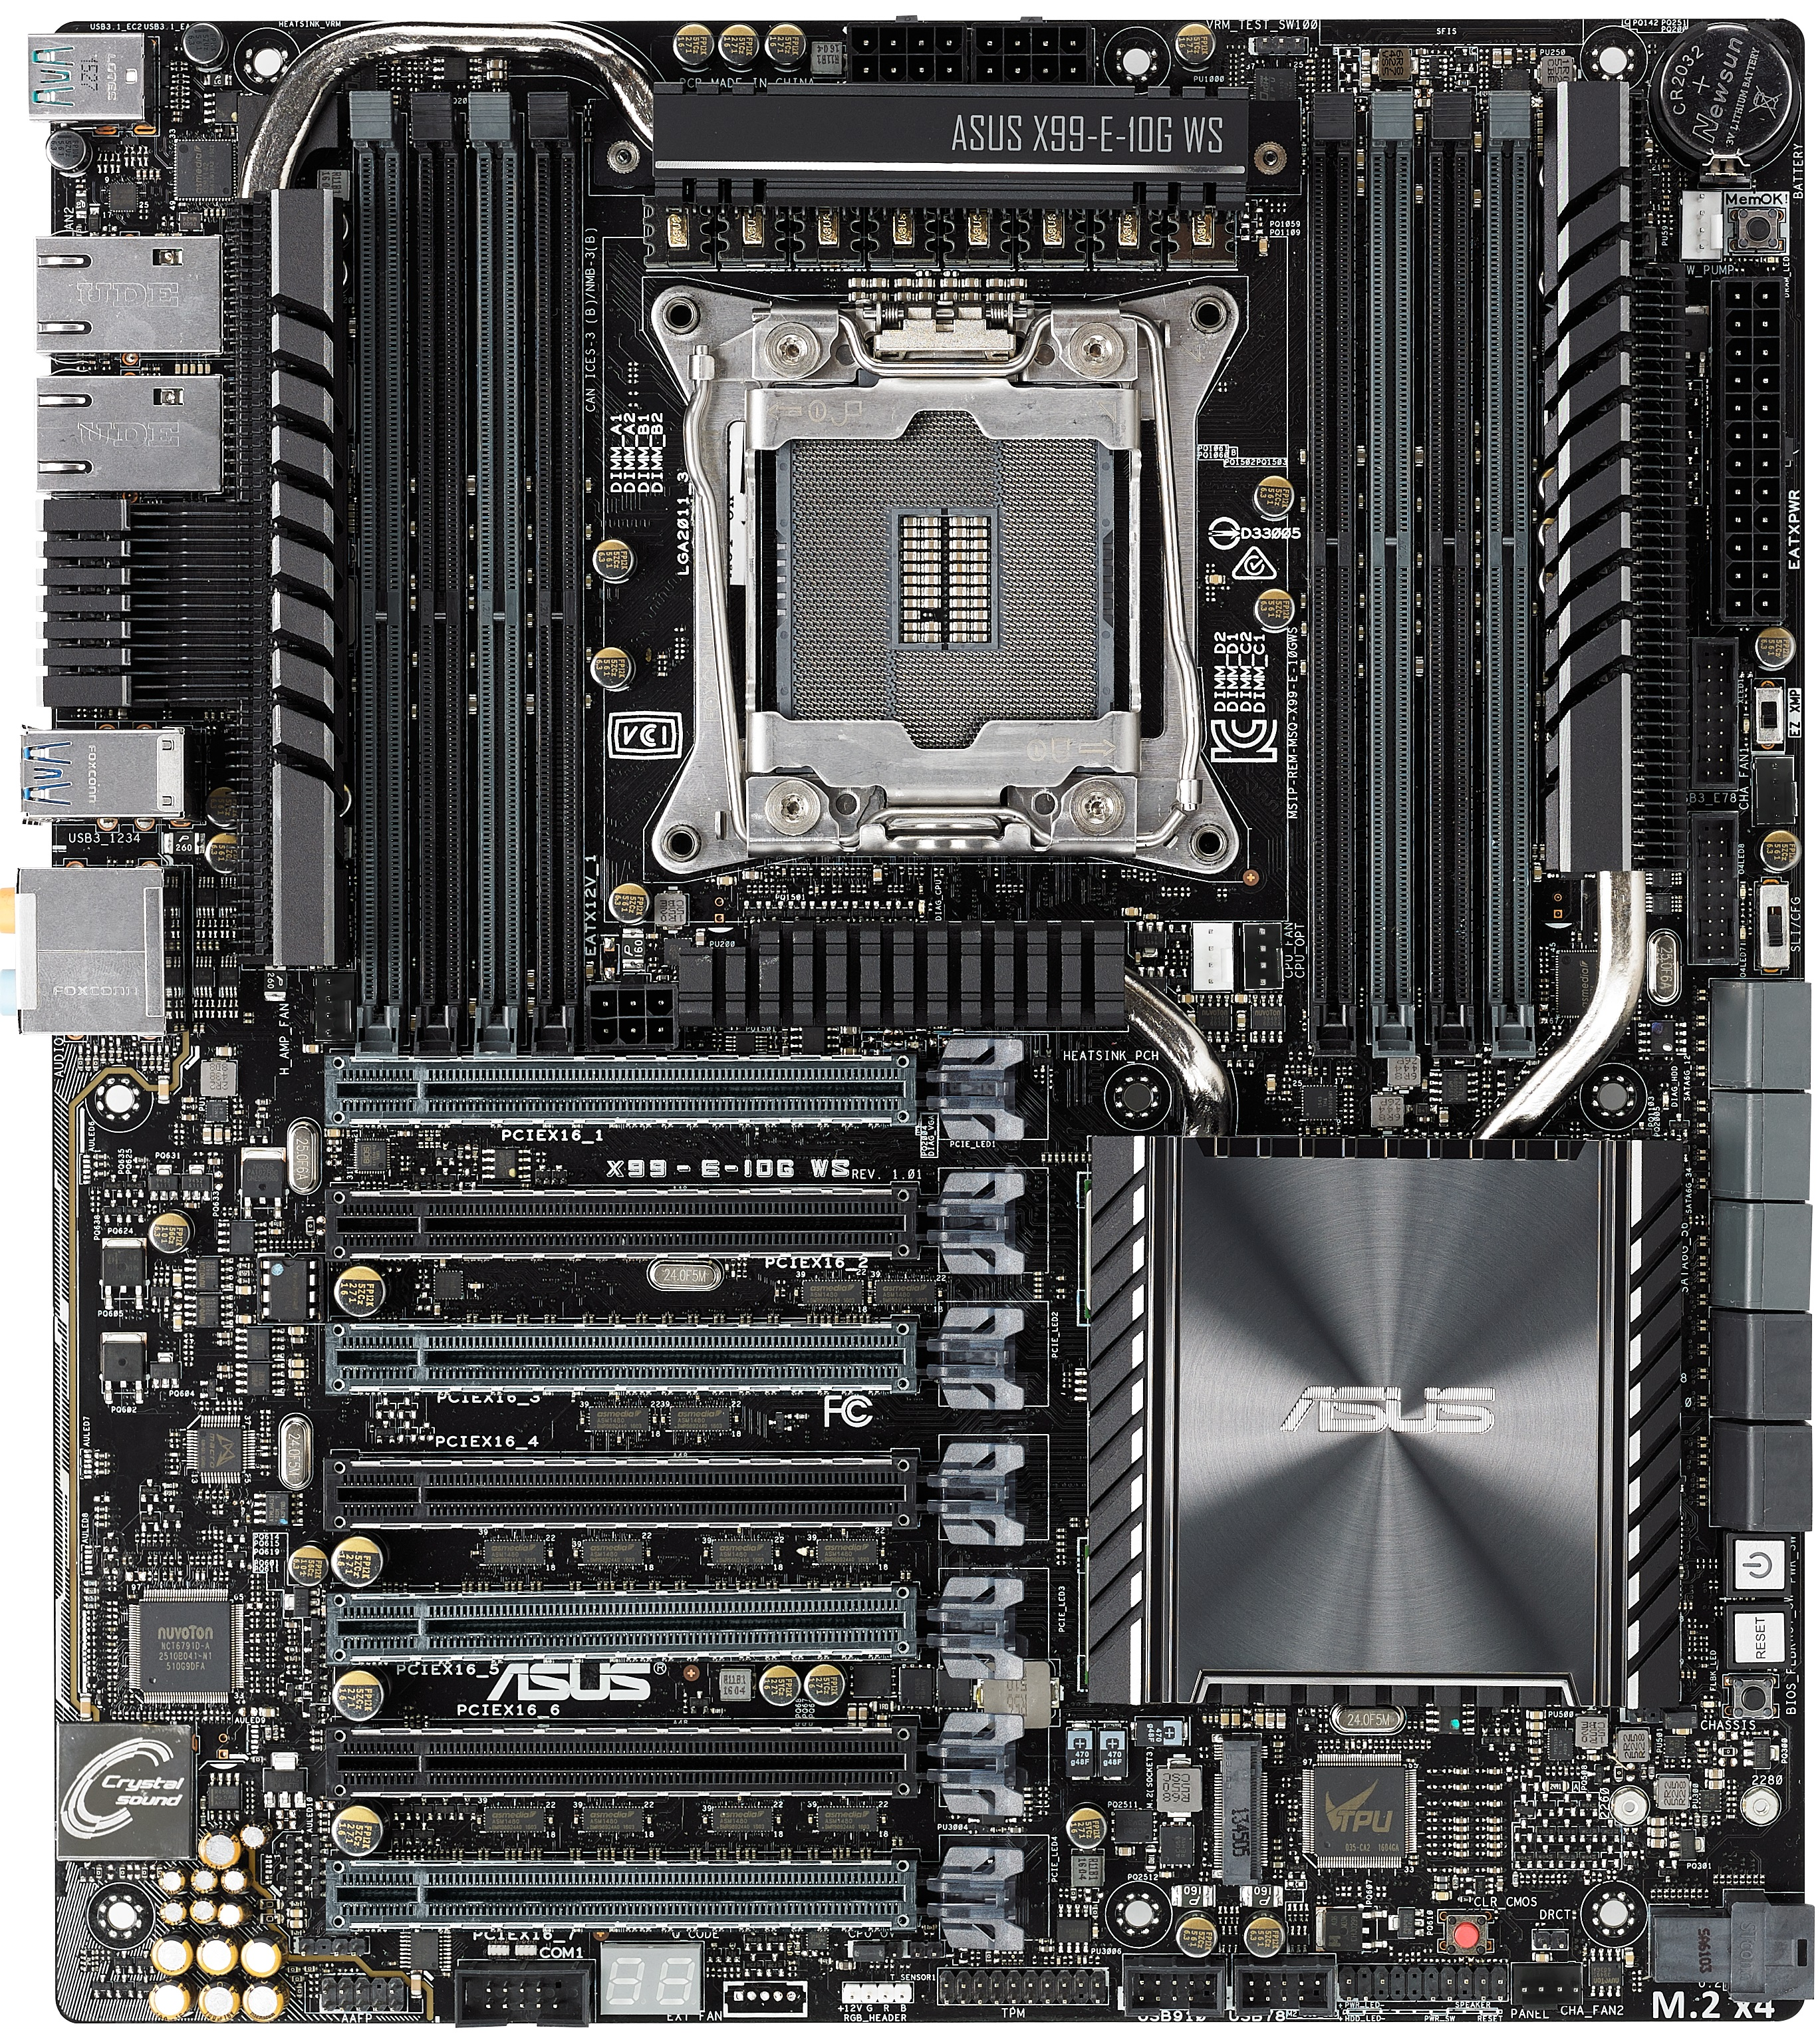 ASUS X99-E-10G WS MOTHERBOARD WINDOWS 8 DRIVERS DOWNLOAD (2019)